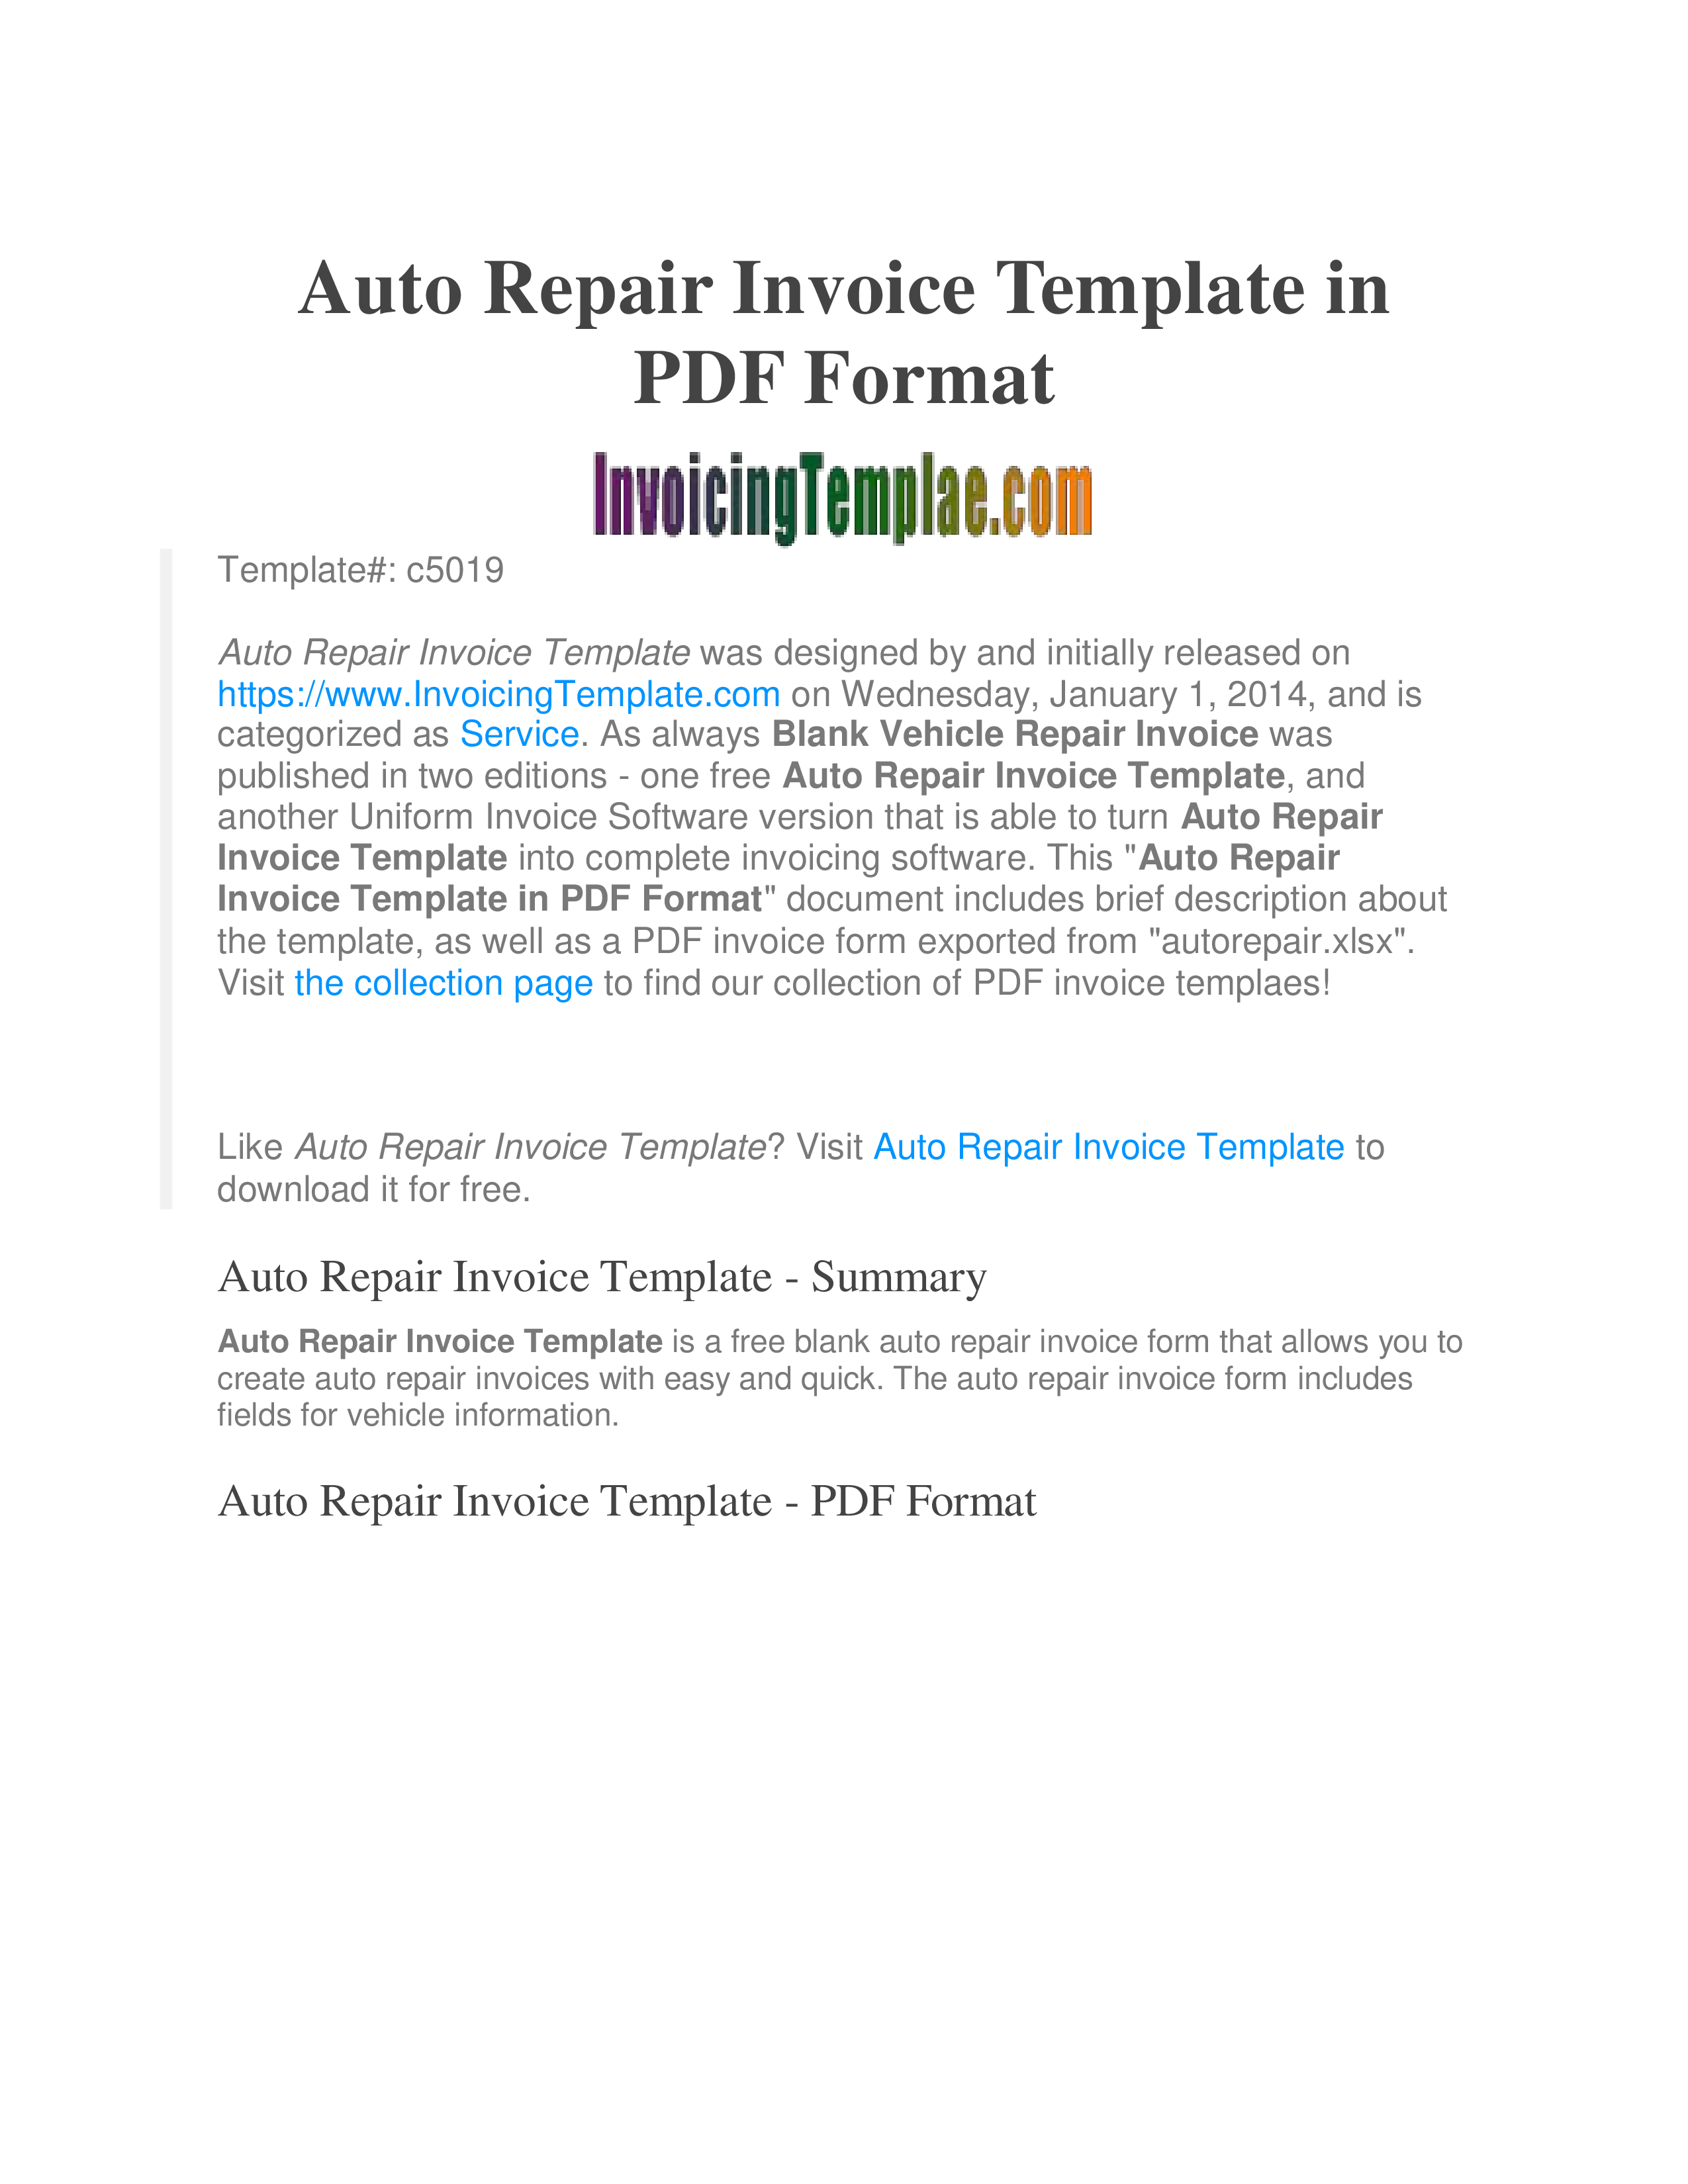 Car Service How To Create A Car Service Download This Car Service Template Now Invoice Template Bill Template Templates